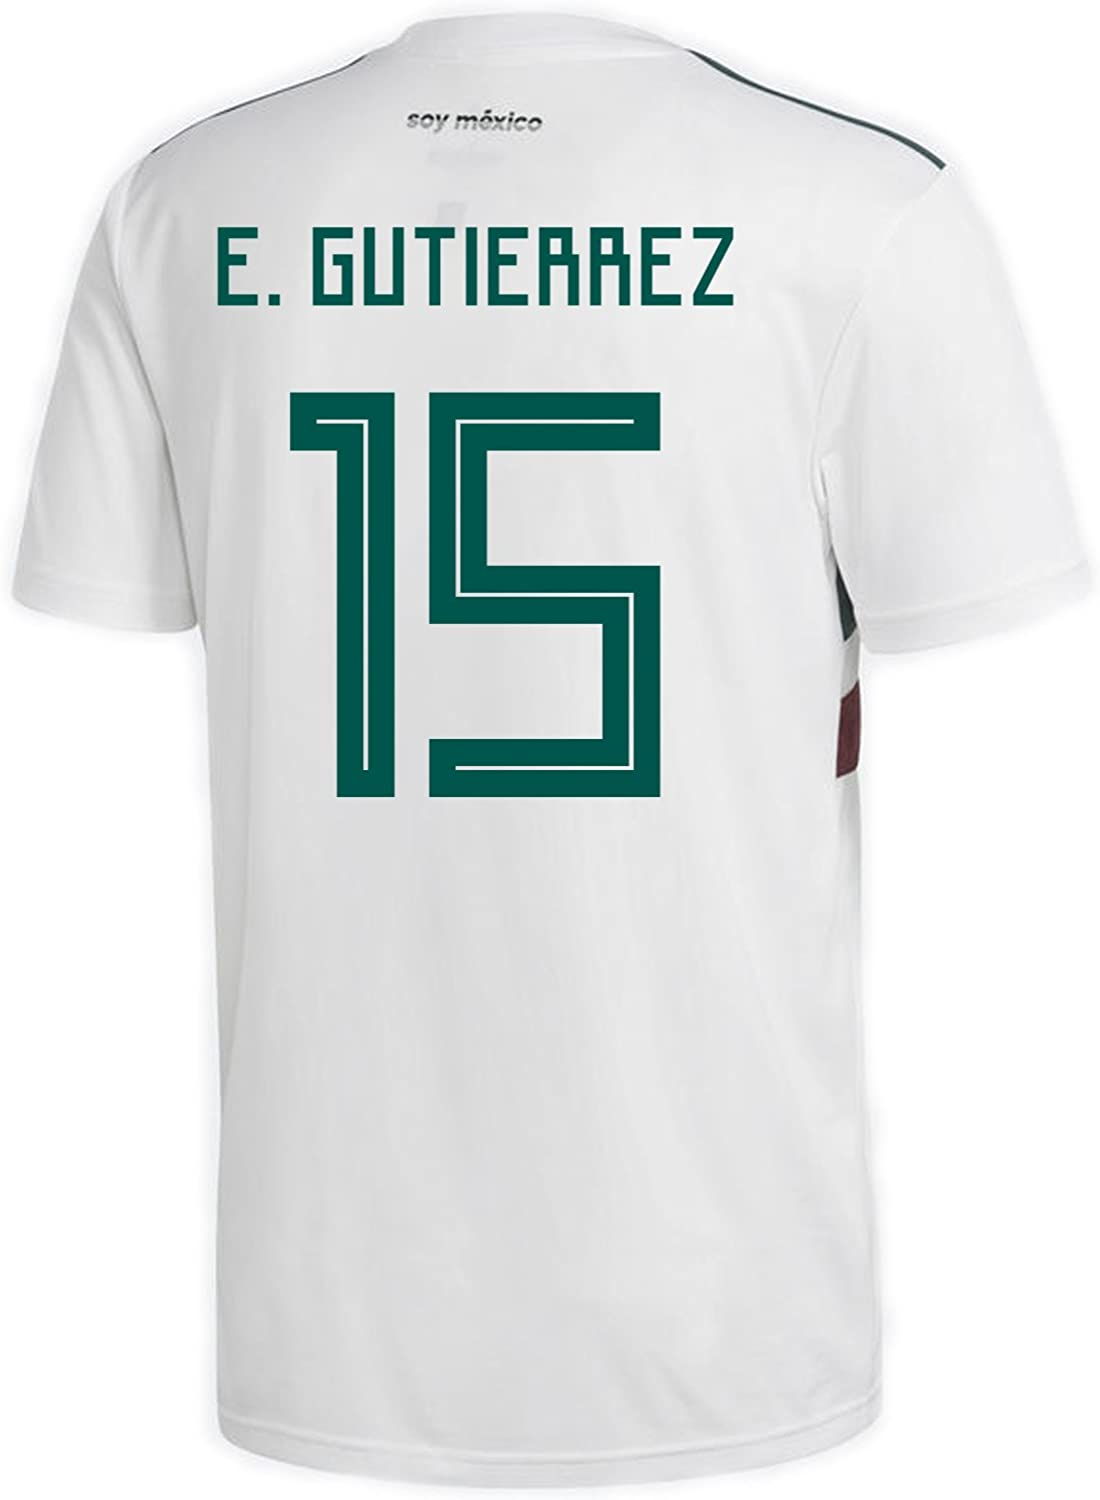 Adidas E. Gutierrez 15Mexiko Away Herren Fuball Trikot World